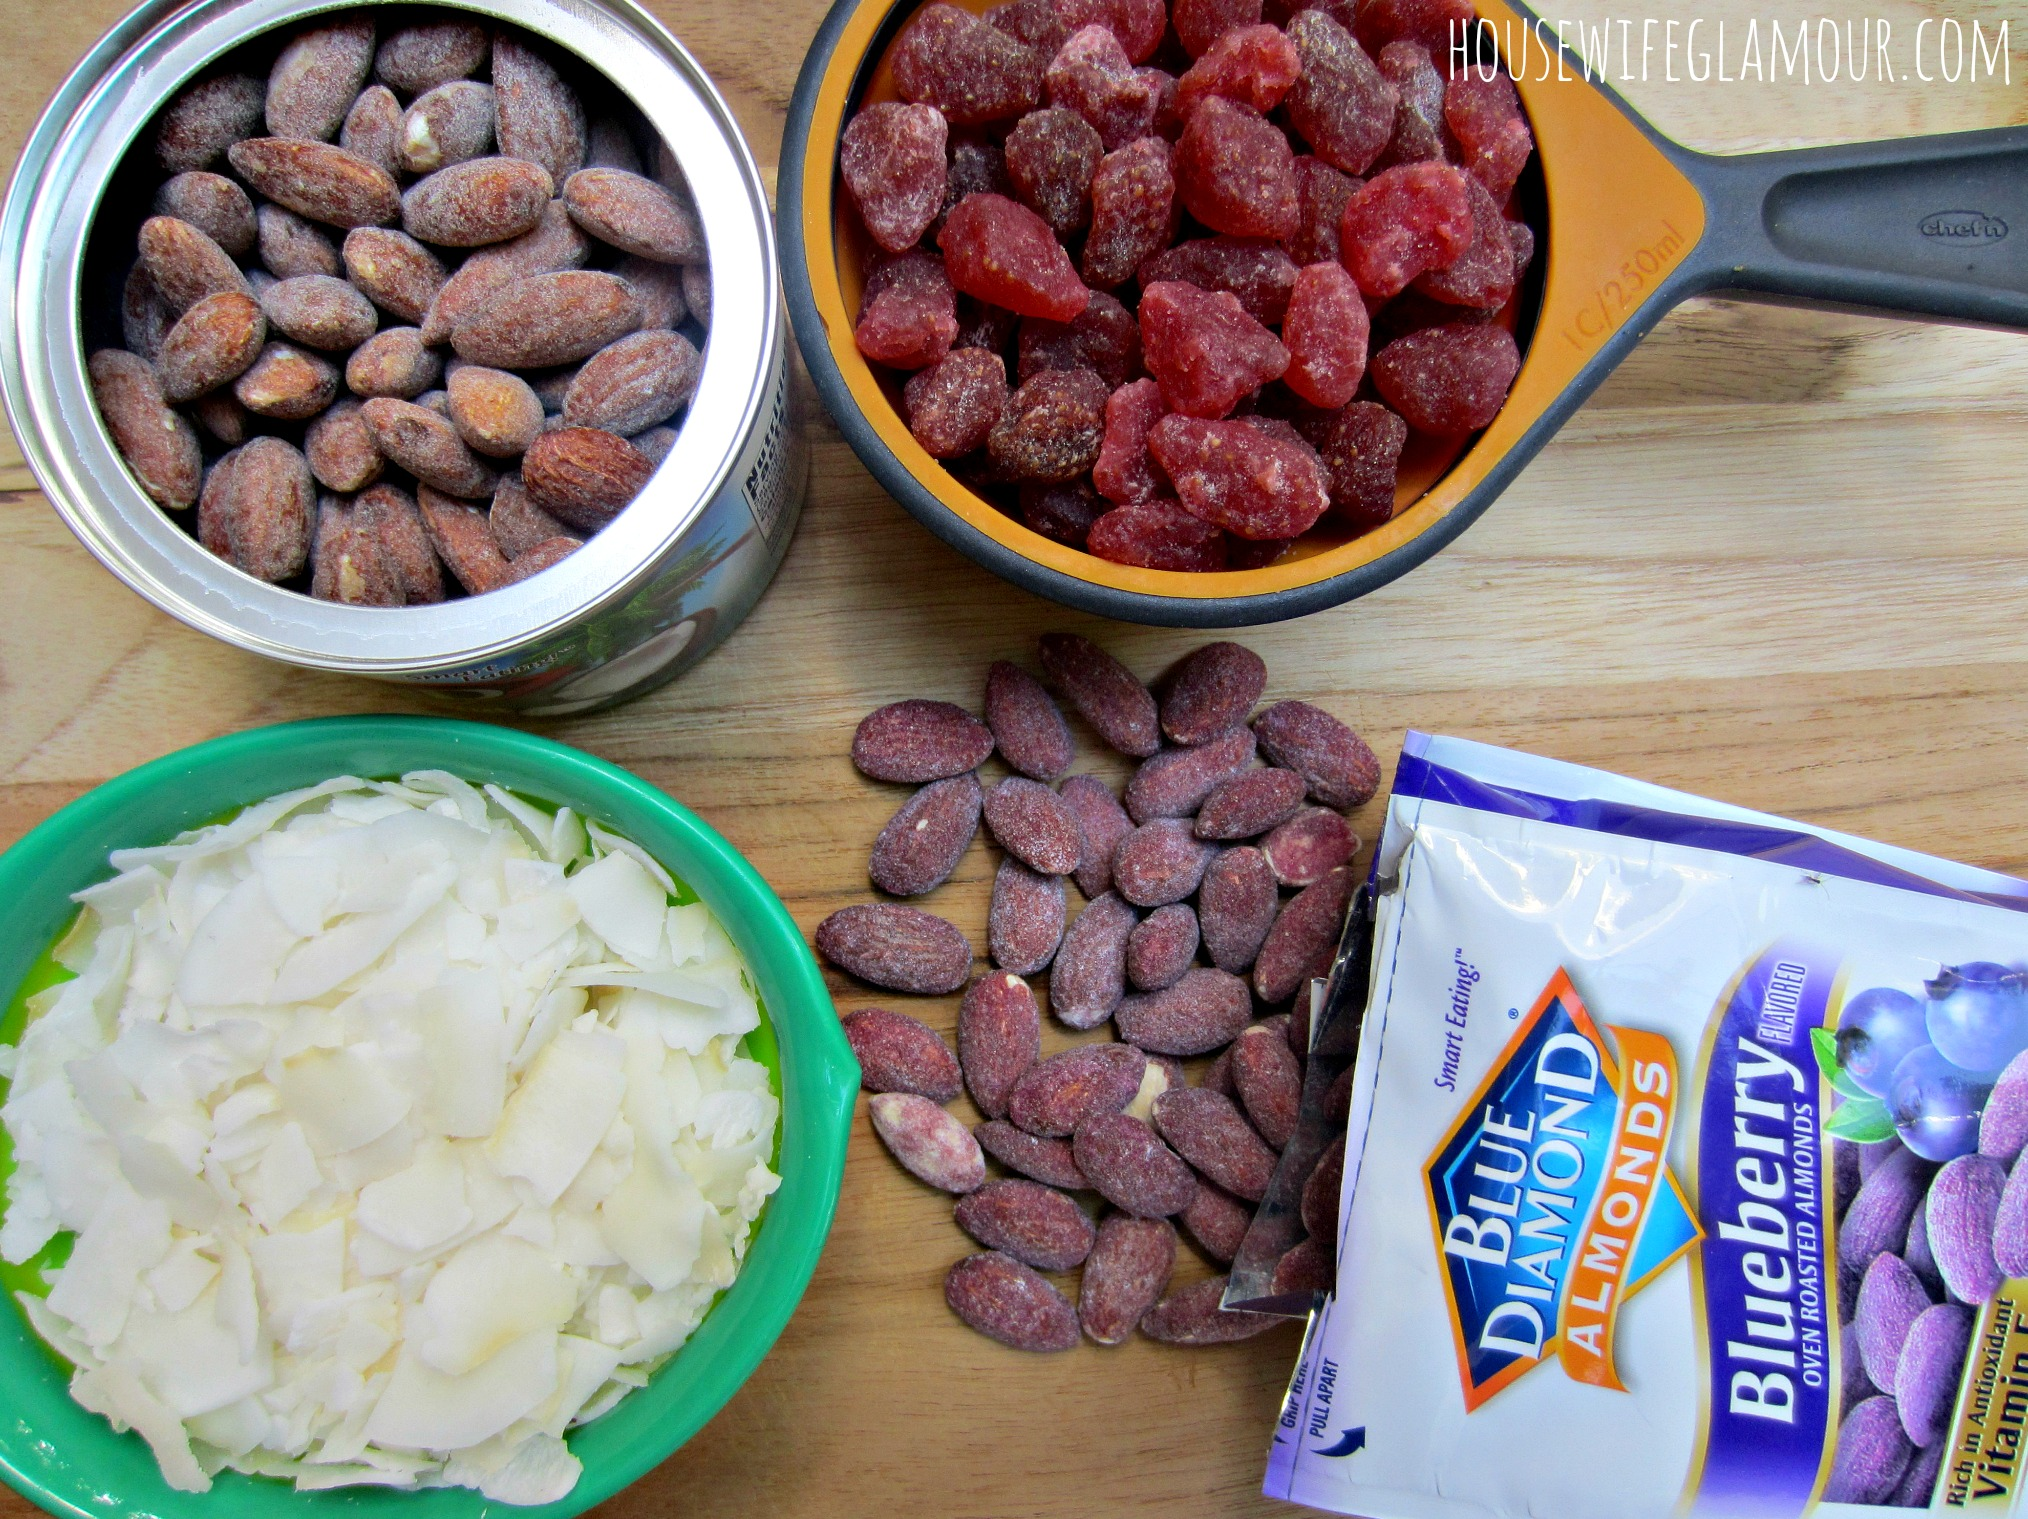 Blue Diamond Almond Trail Mix